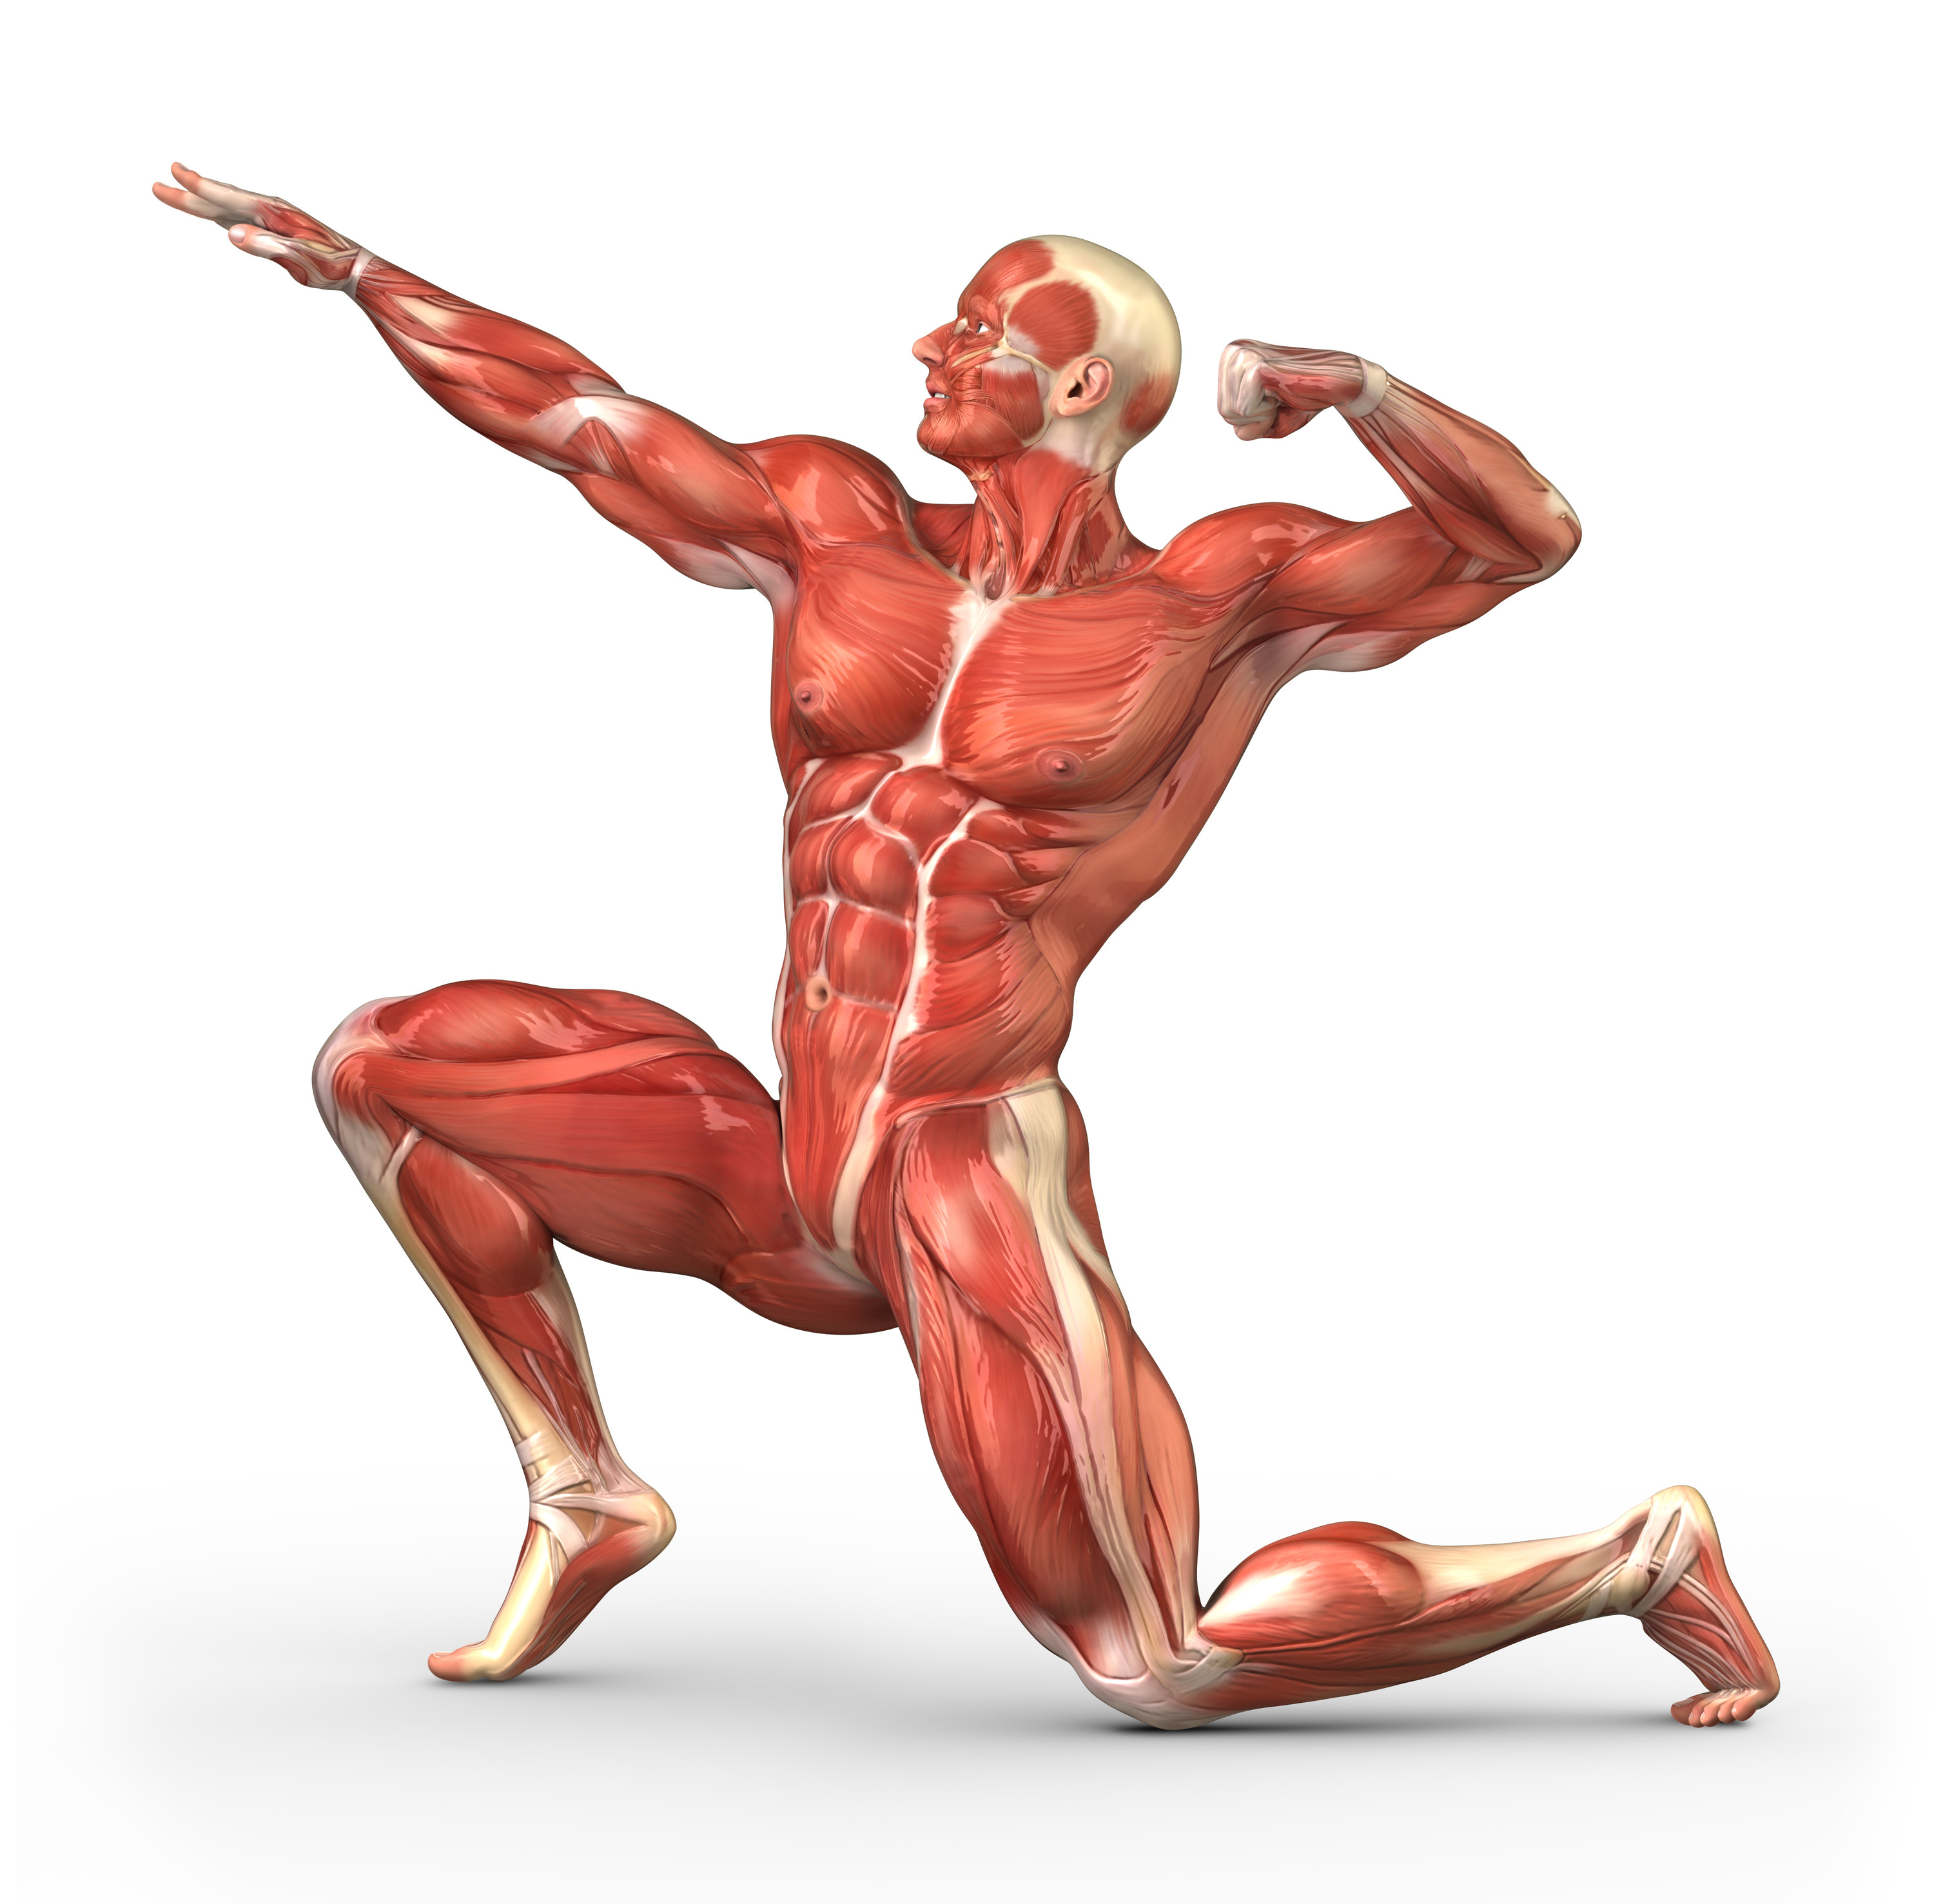 Image result for The human body muscles